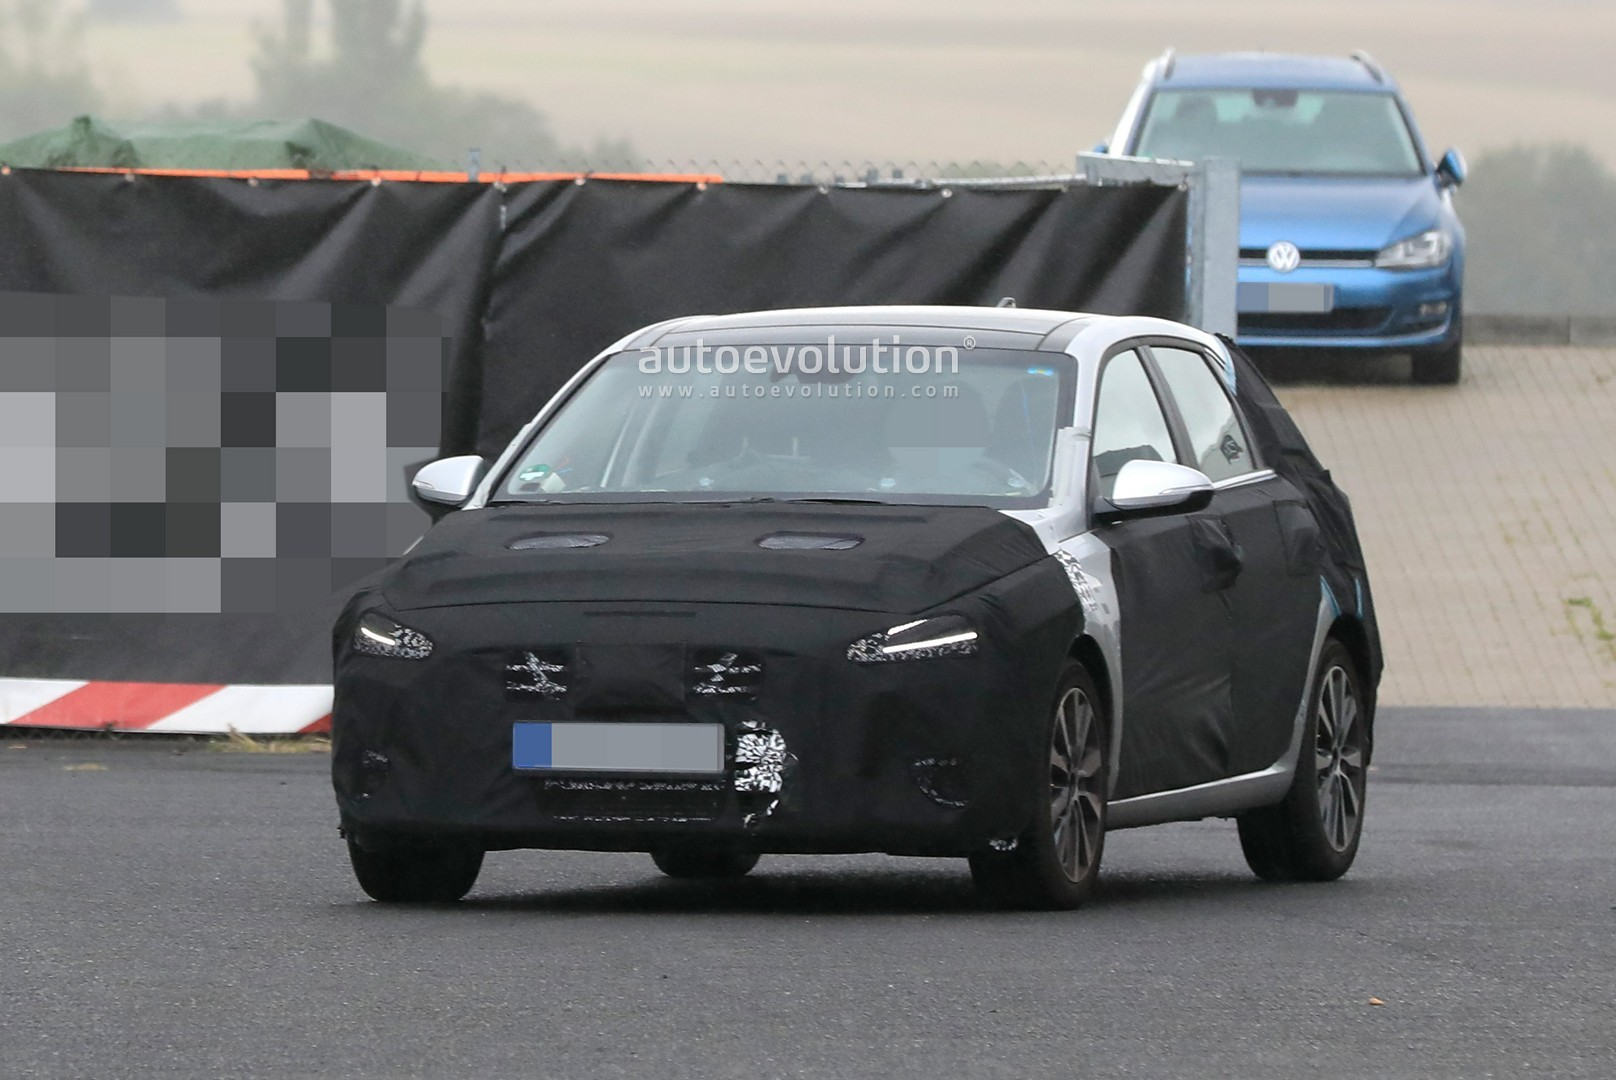 2021 Hyundai I30 Facelift Spied With Big Grille Nexo Like